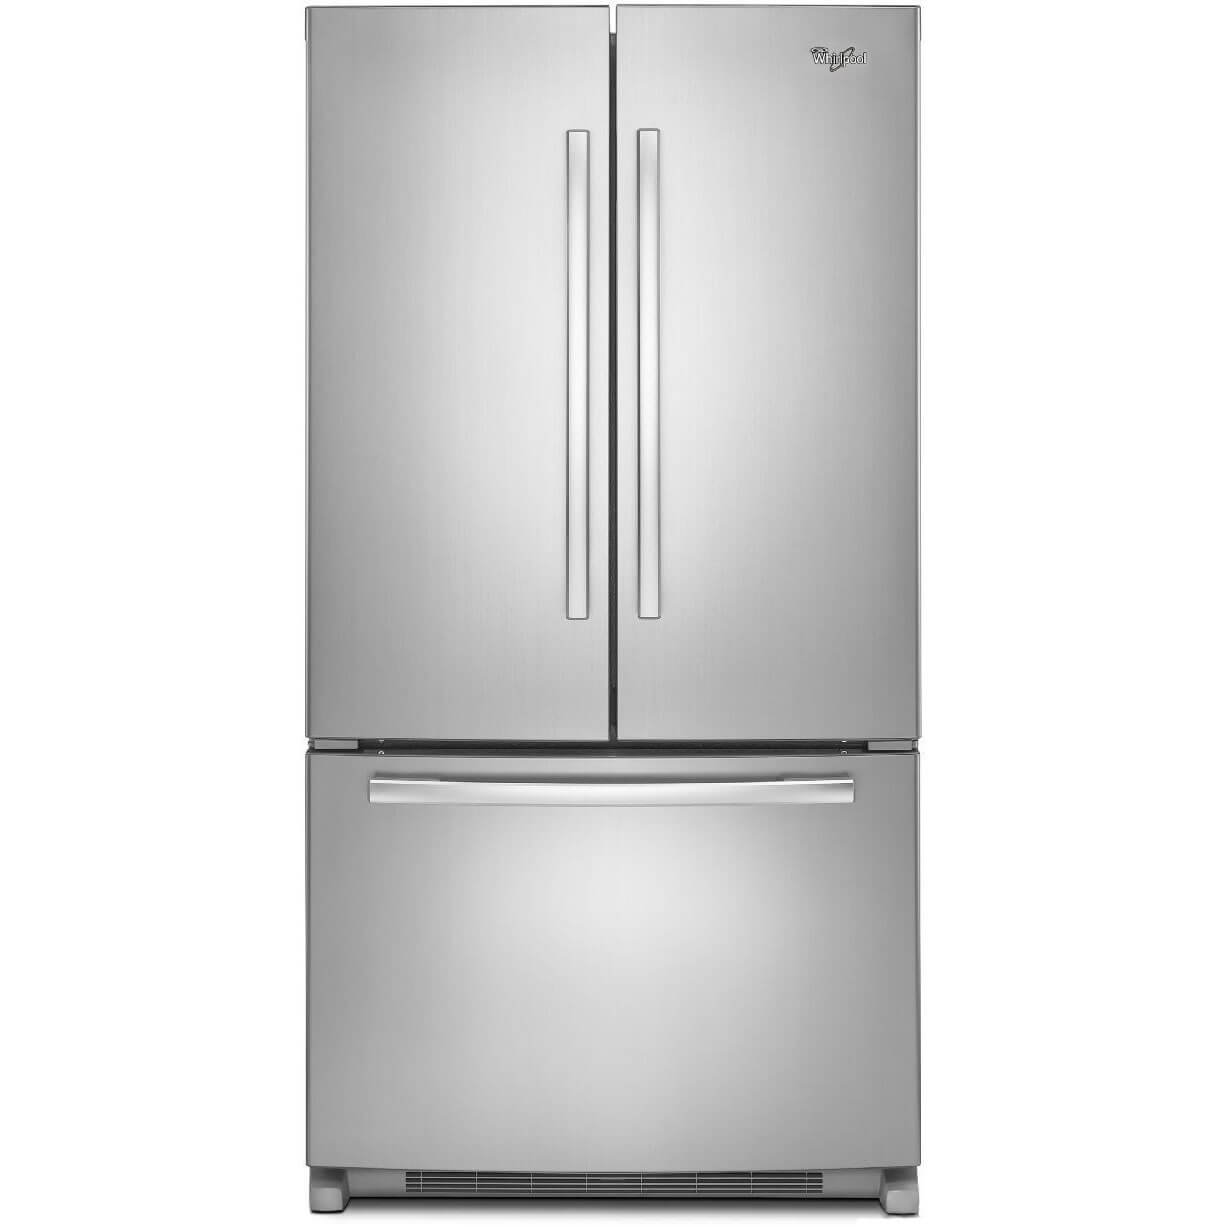 white french door refrigerator. Whirlpool WRF540CWBM 19.6 Cu. Ft. Stainless Counter-Depth French Door Refrigerator White